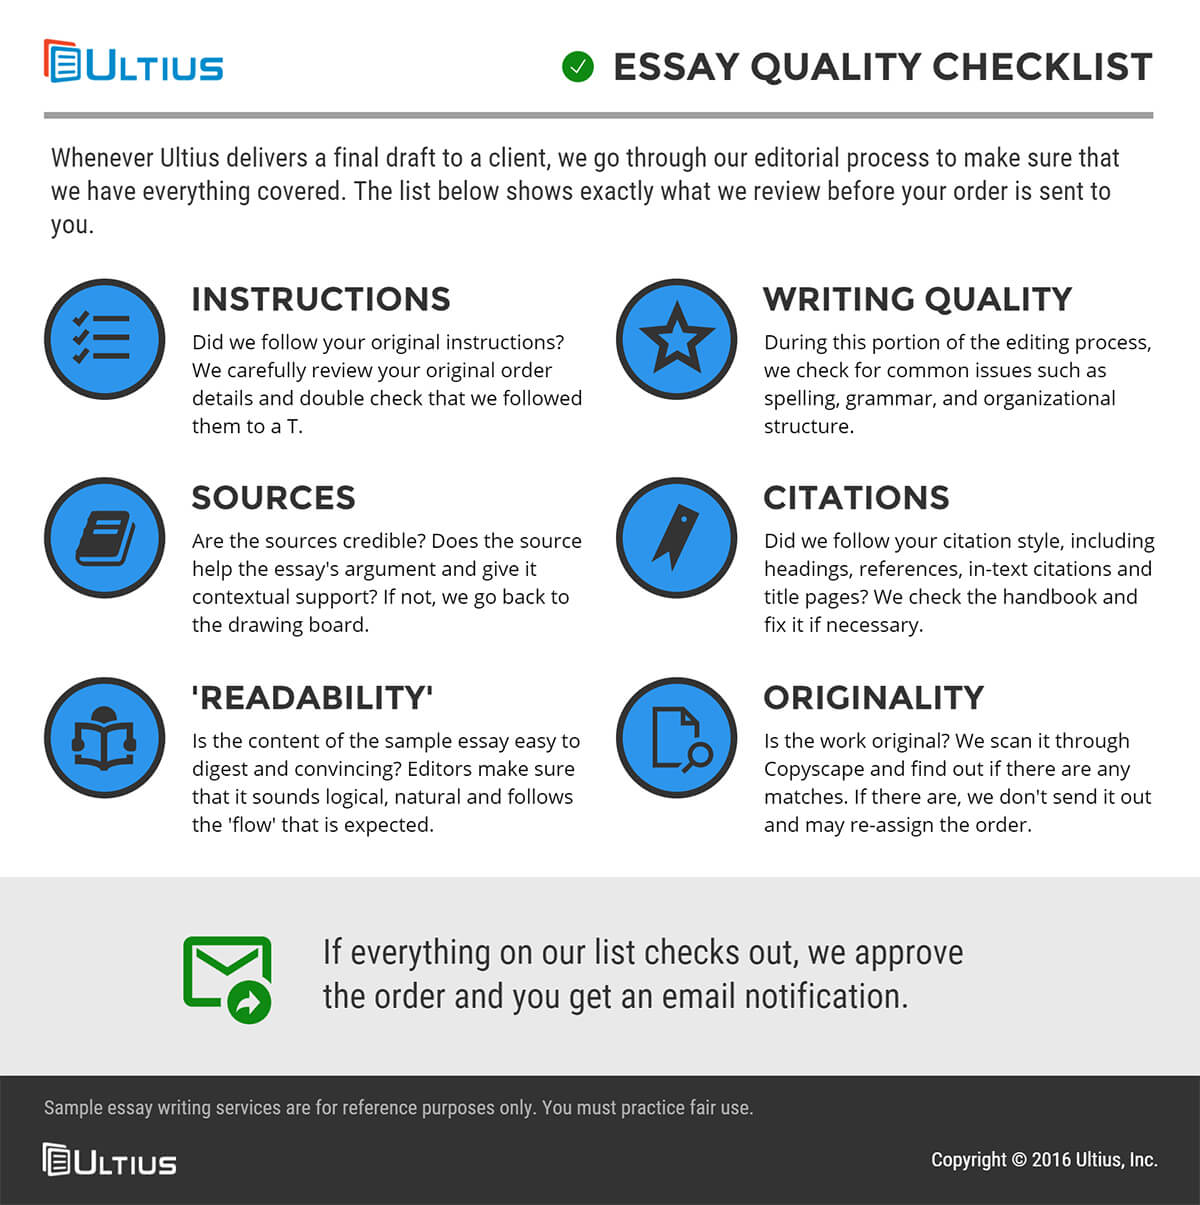 buy persuasive essay online professional american writers  purchased persuasive essay quality checklist